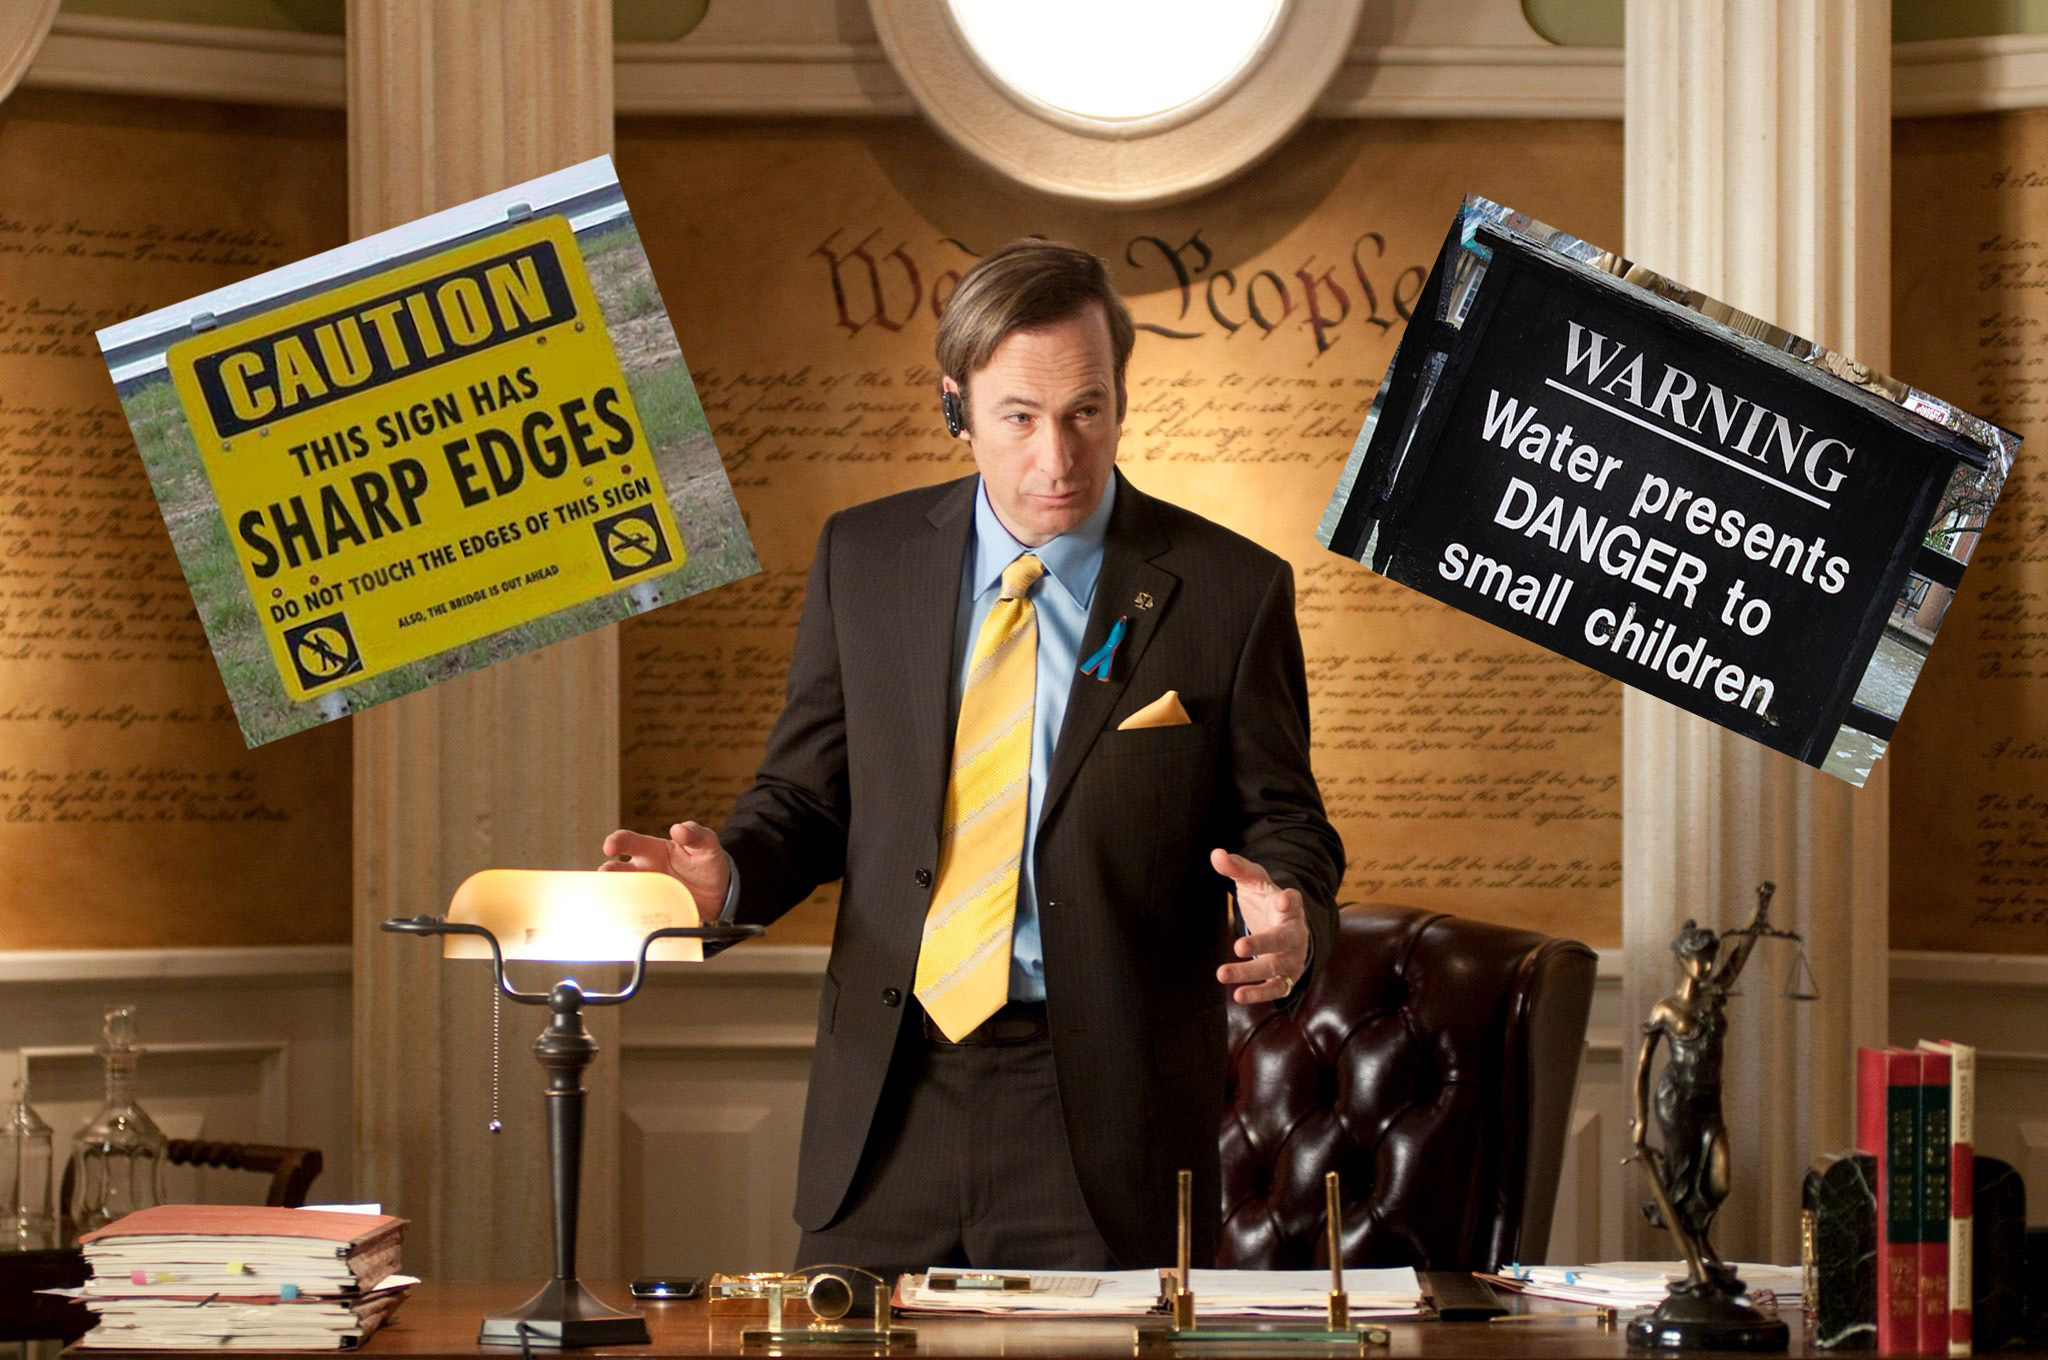 Lawyer Saul Goodman from Breaking Bad & Better Call Saul